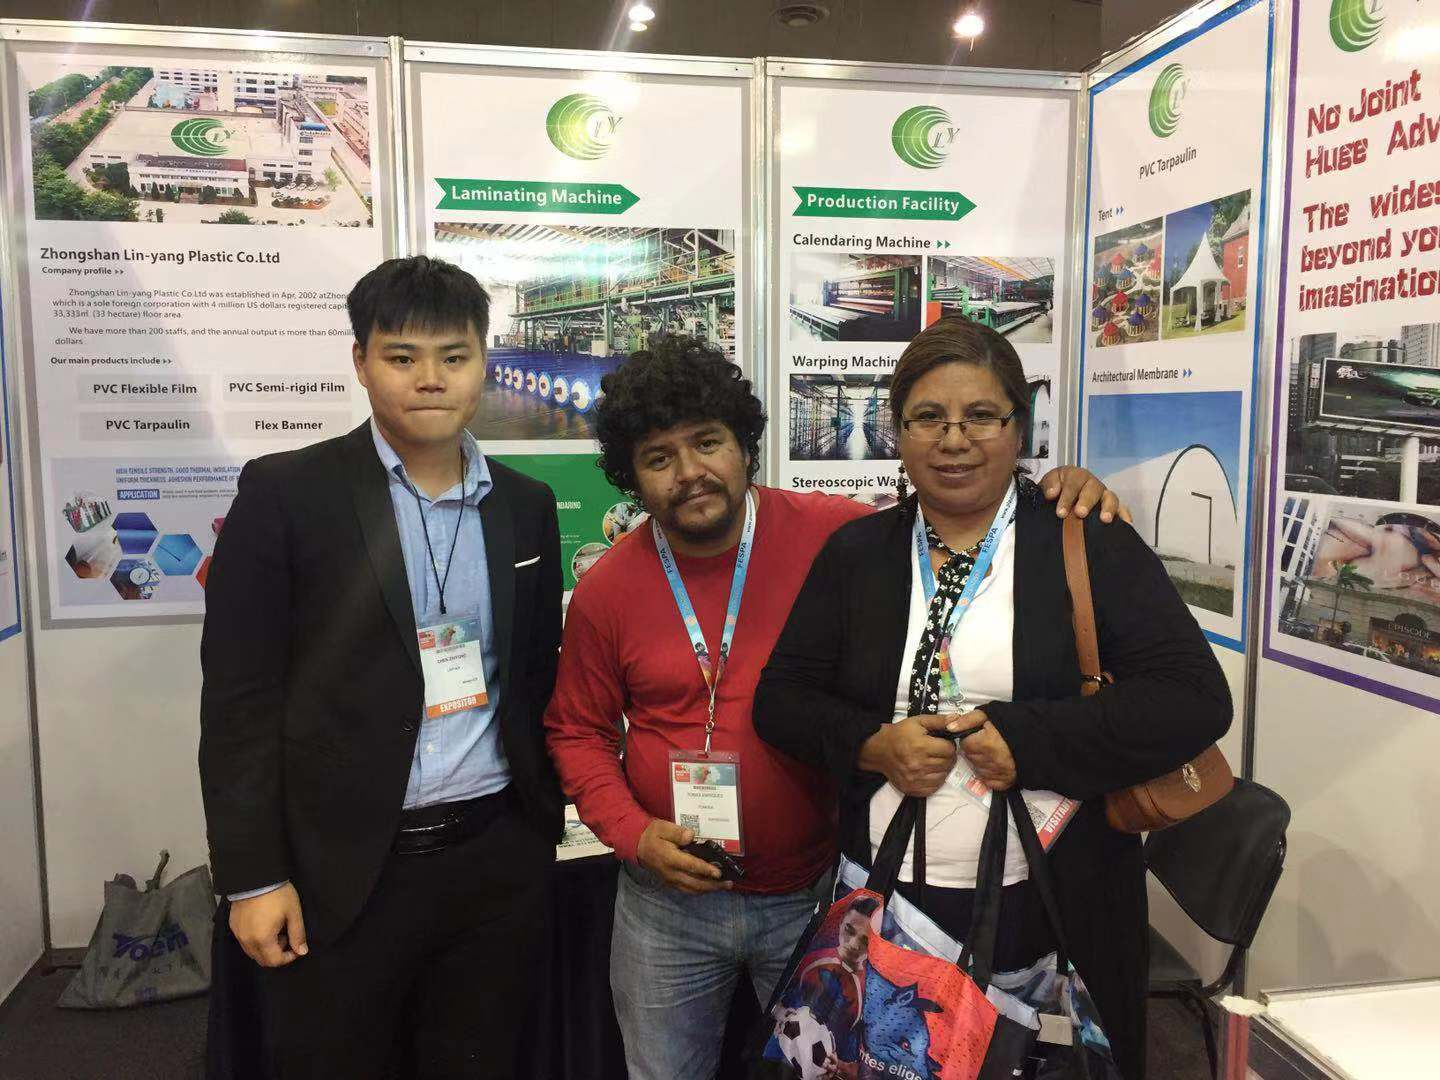 LIN-YANG-We attended fair fespa mexico 2019 with our new flex banner and pvc tarpaulin-3